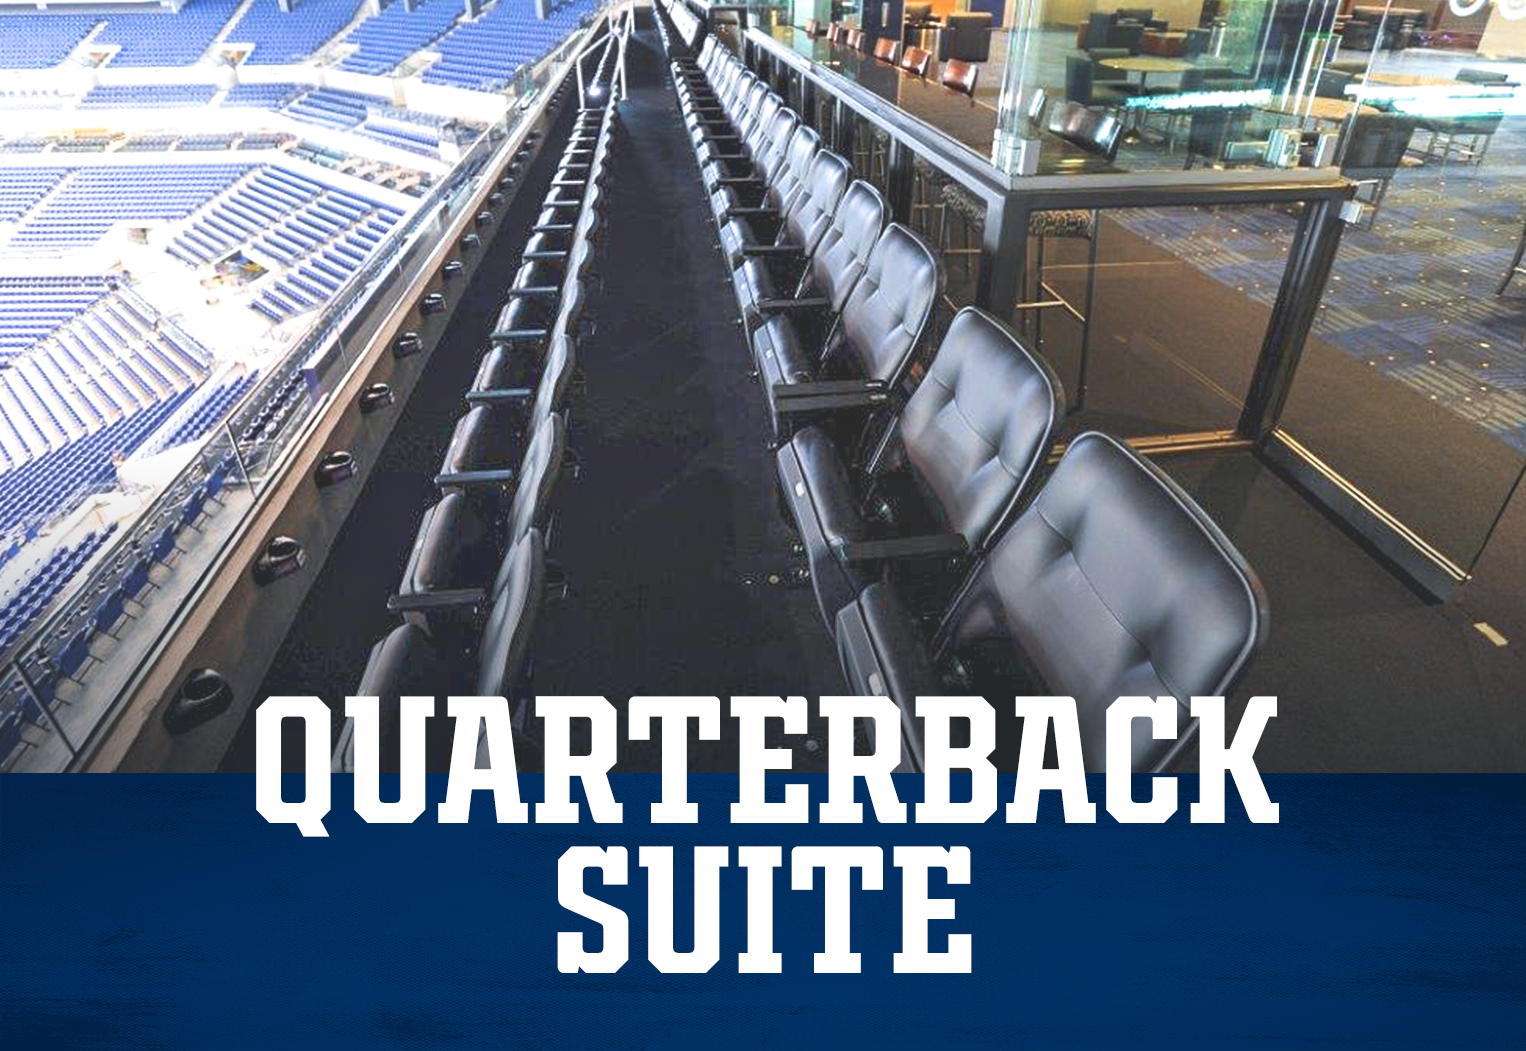 Indianapolis Colts Quarterback Suite At Lucas Oil Stadium